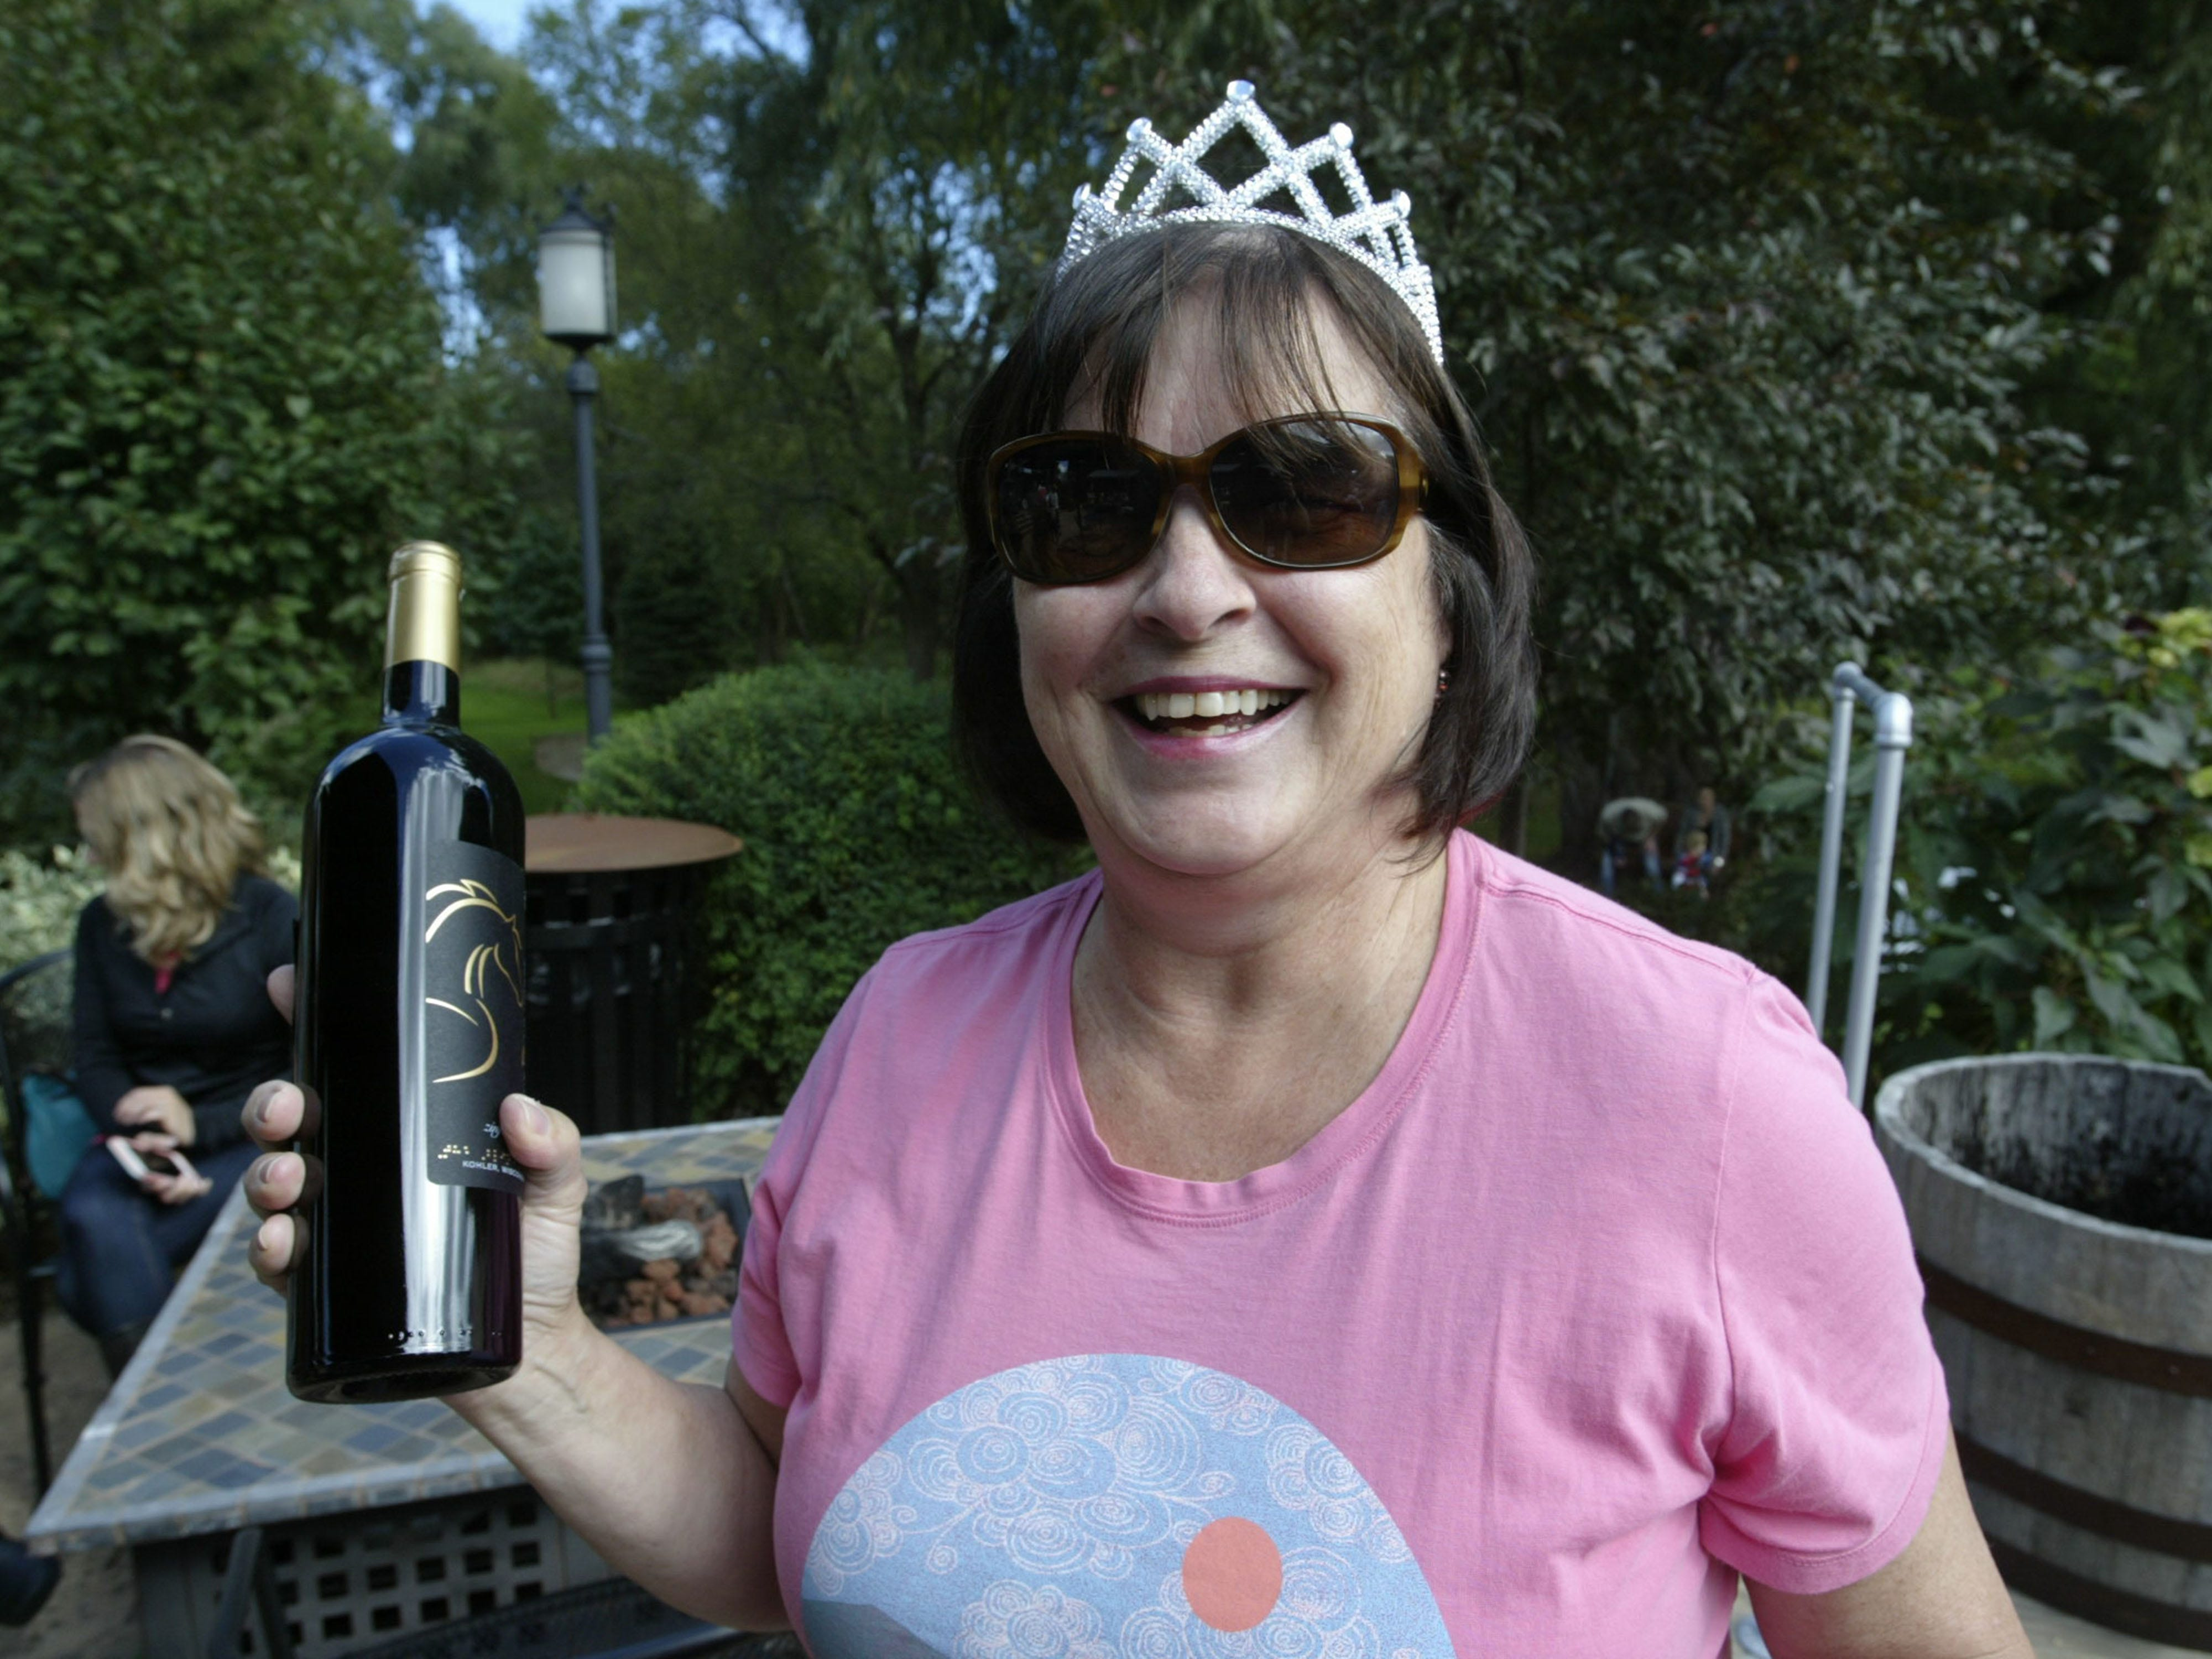 Nancy Neusen of Fond du Lac, Wis. smiles following her win in the grape stomp at the Harvest Festival & Grape Stomp at The Blind Horse Restaurant and Winery, Saturday, September 22, 2018, in Kohler, Wis. Winners got a bottle of The Blind Horse Winery wine.